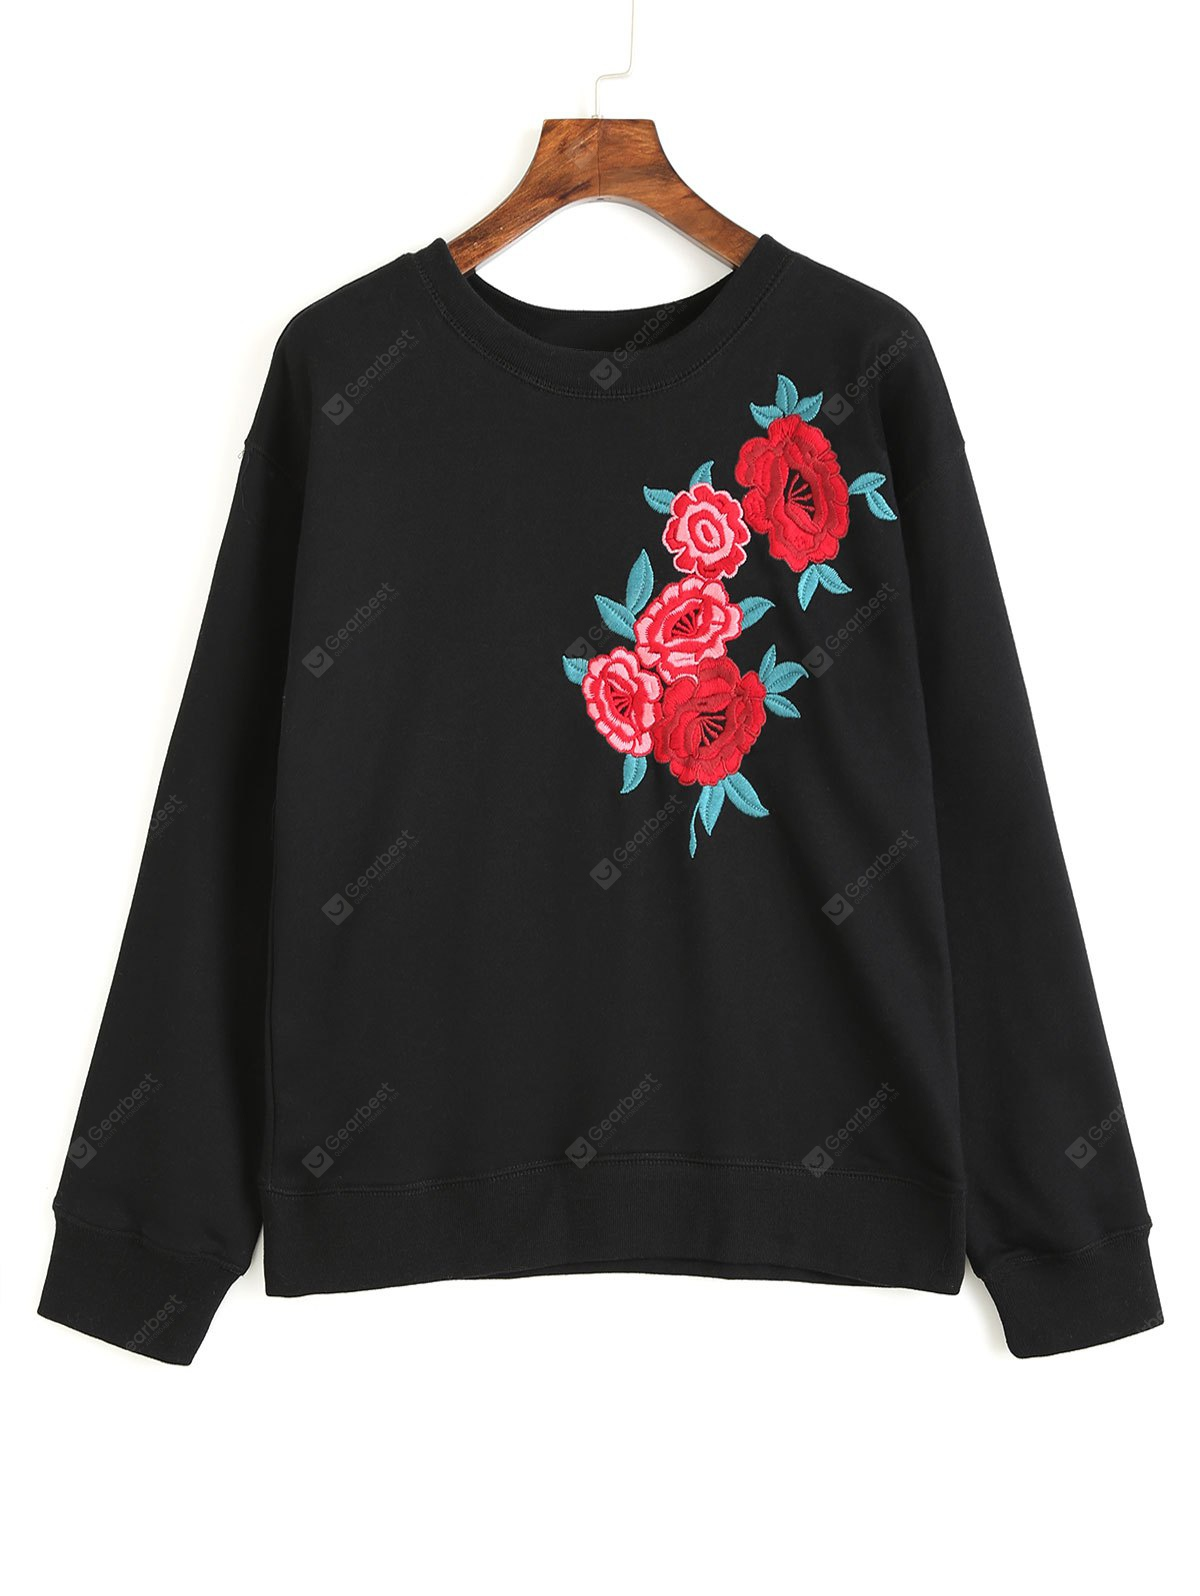 Floral Embroidered Long Sleeve Loose Sweatshirt